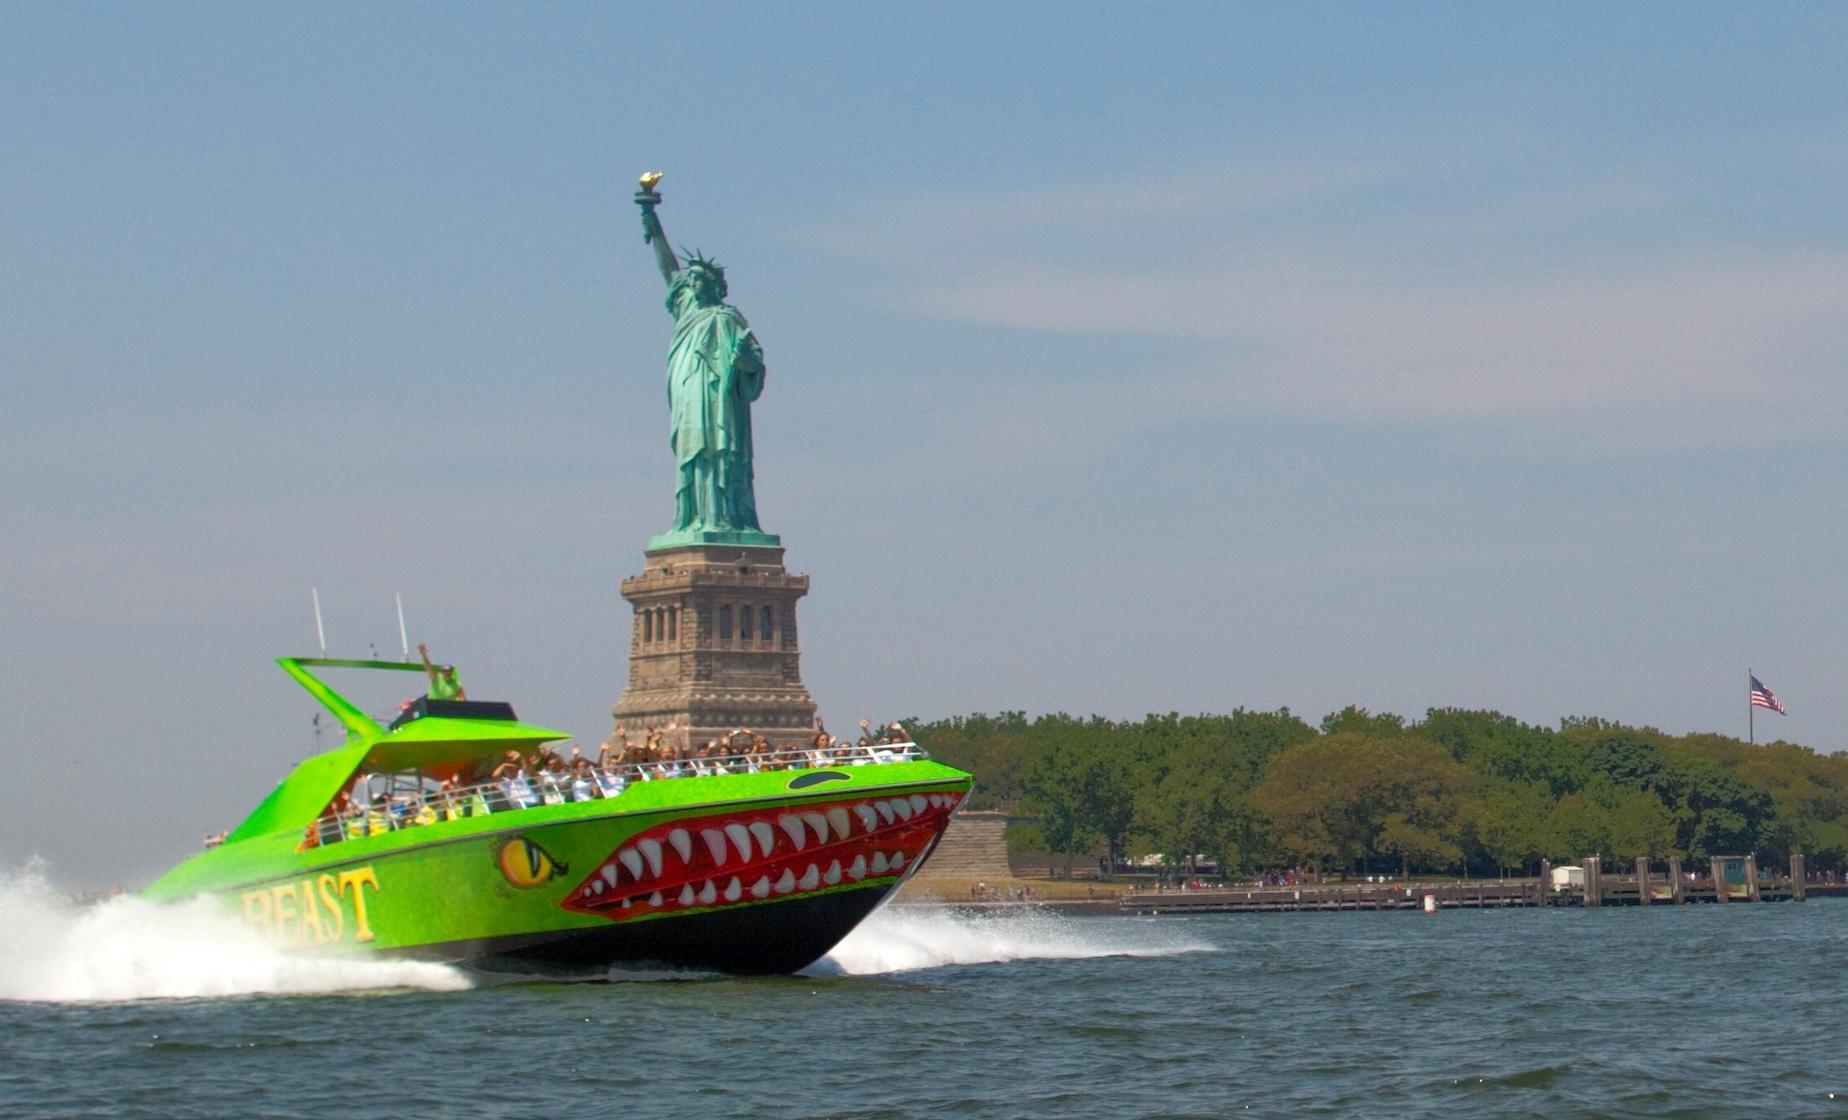 New York Beast Speedboat Ride